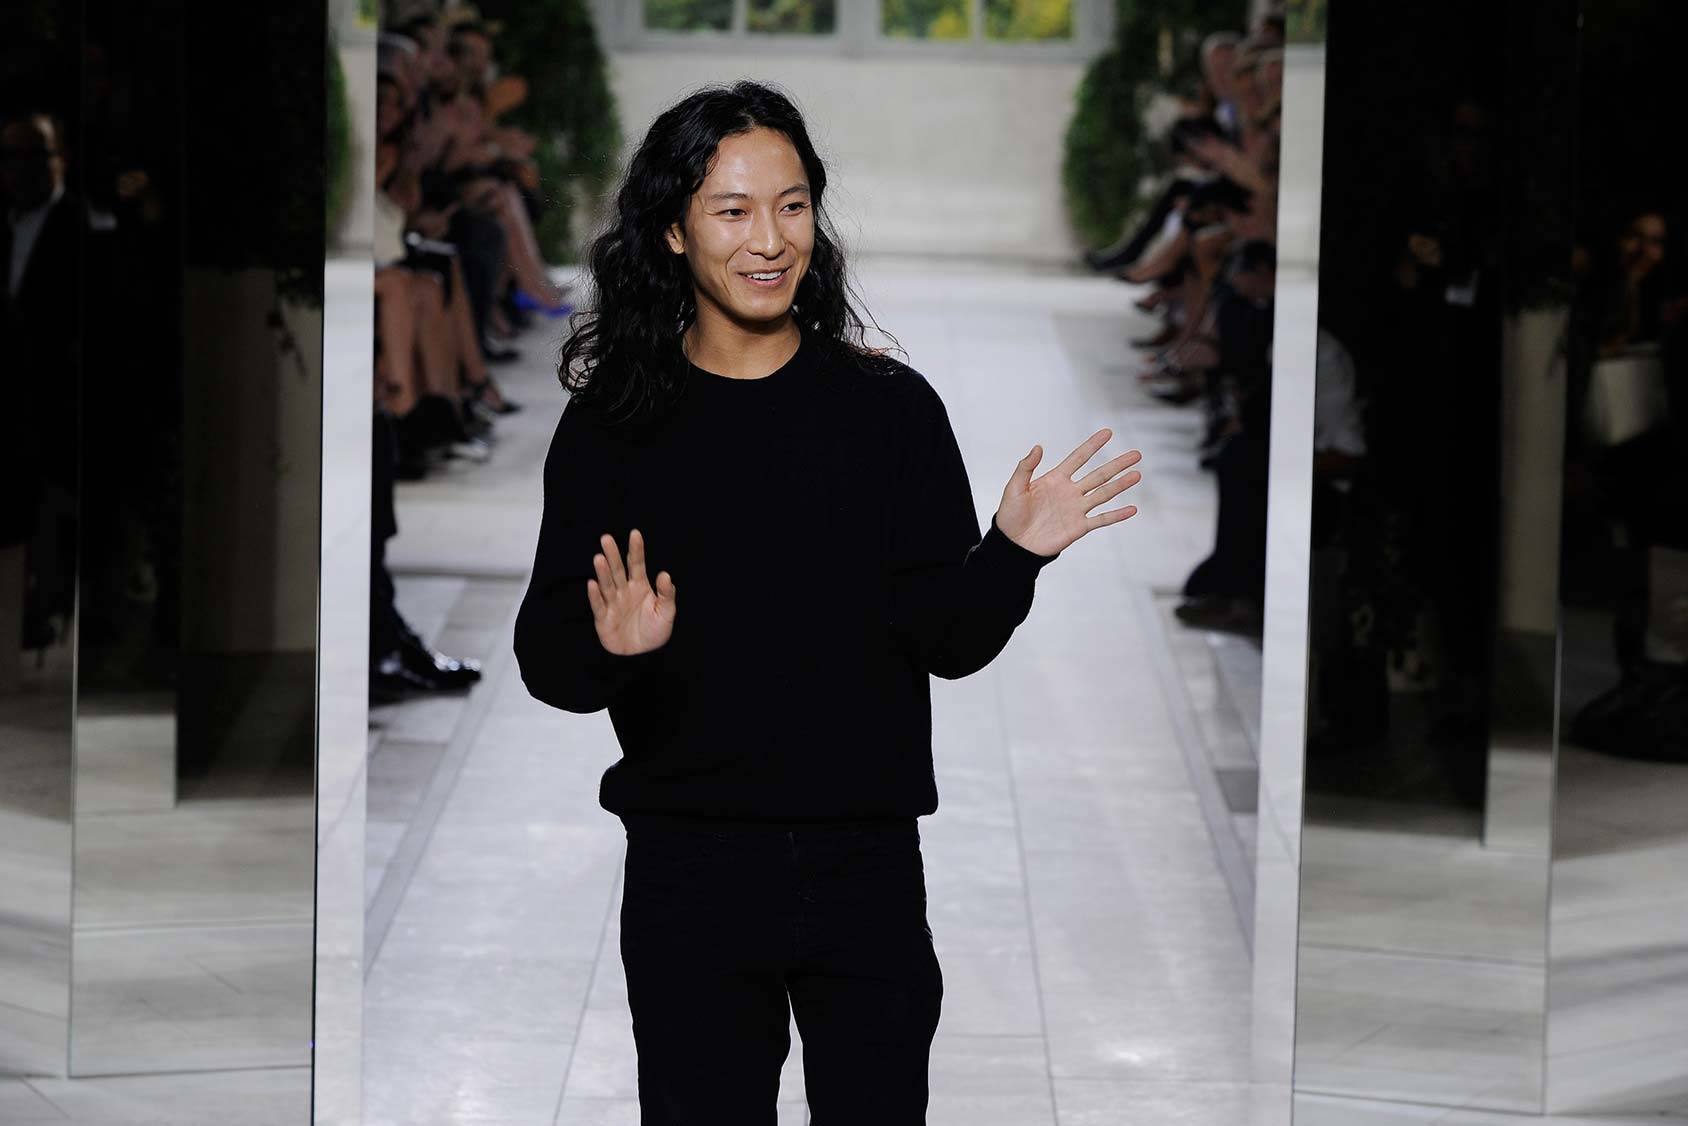 The Alexander Wang x H&M collection will be available in selected stores and online from 6 November, All Over Press.